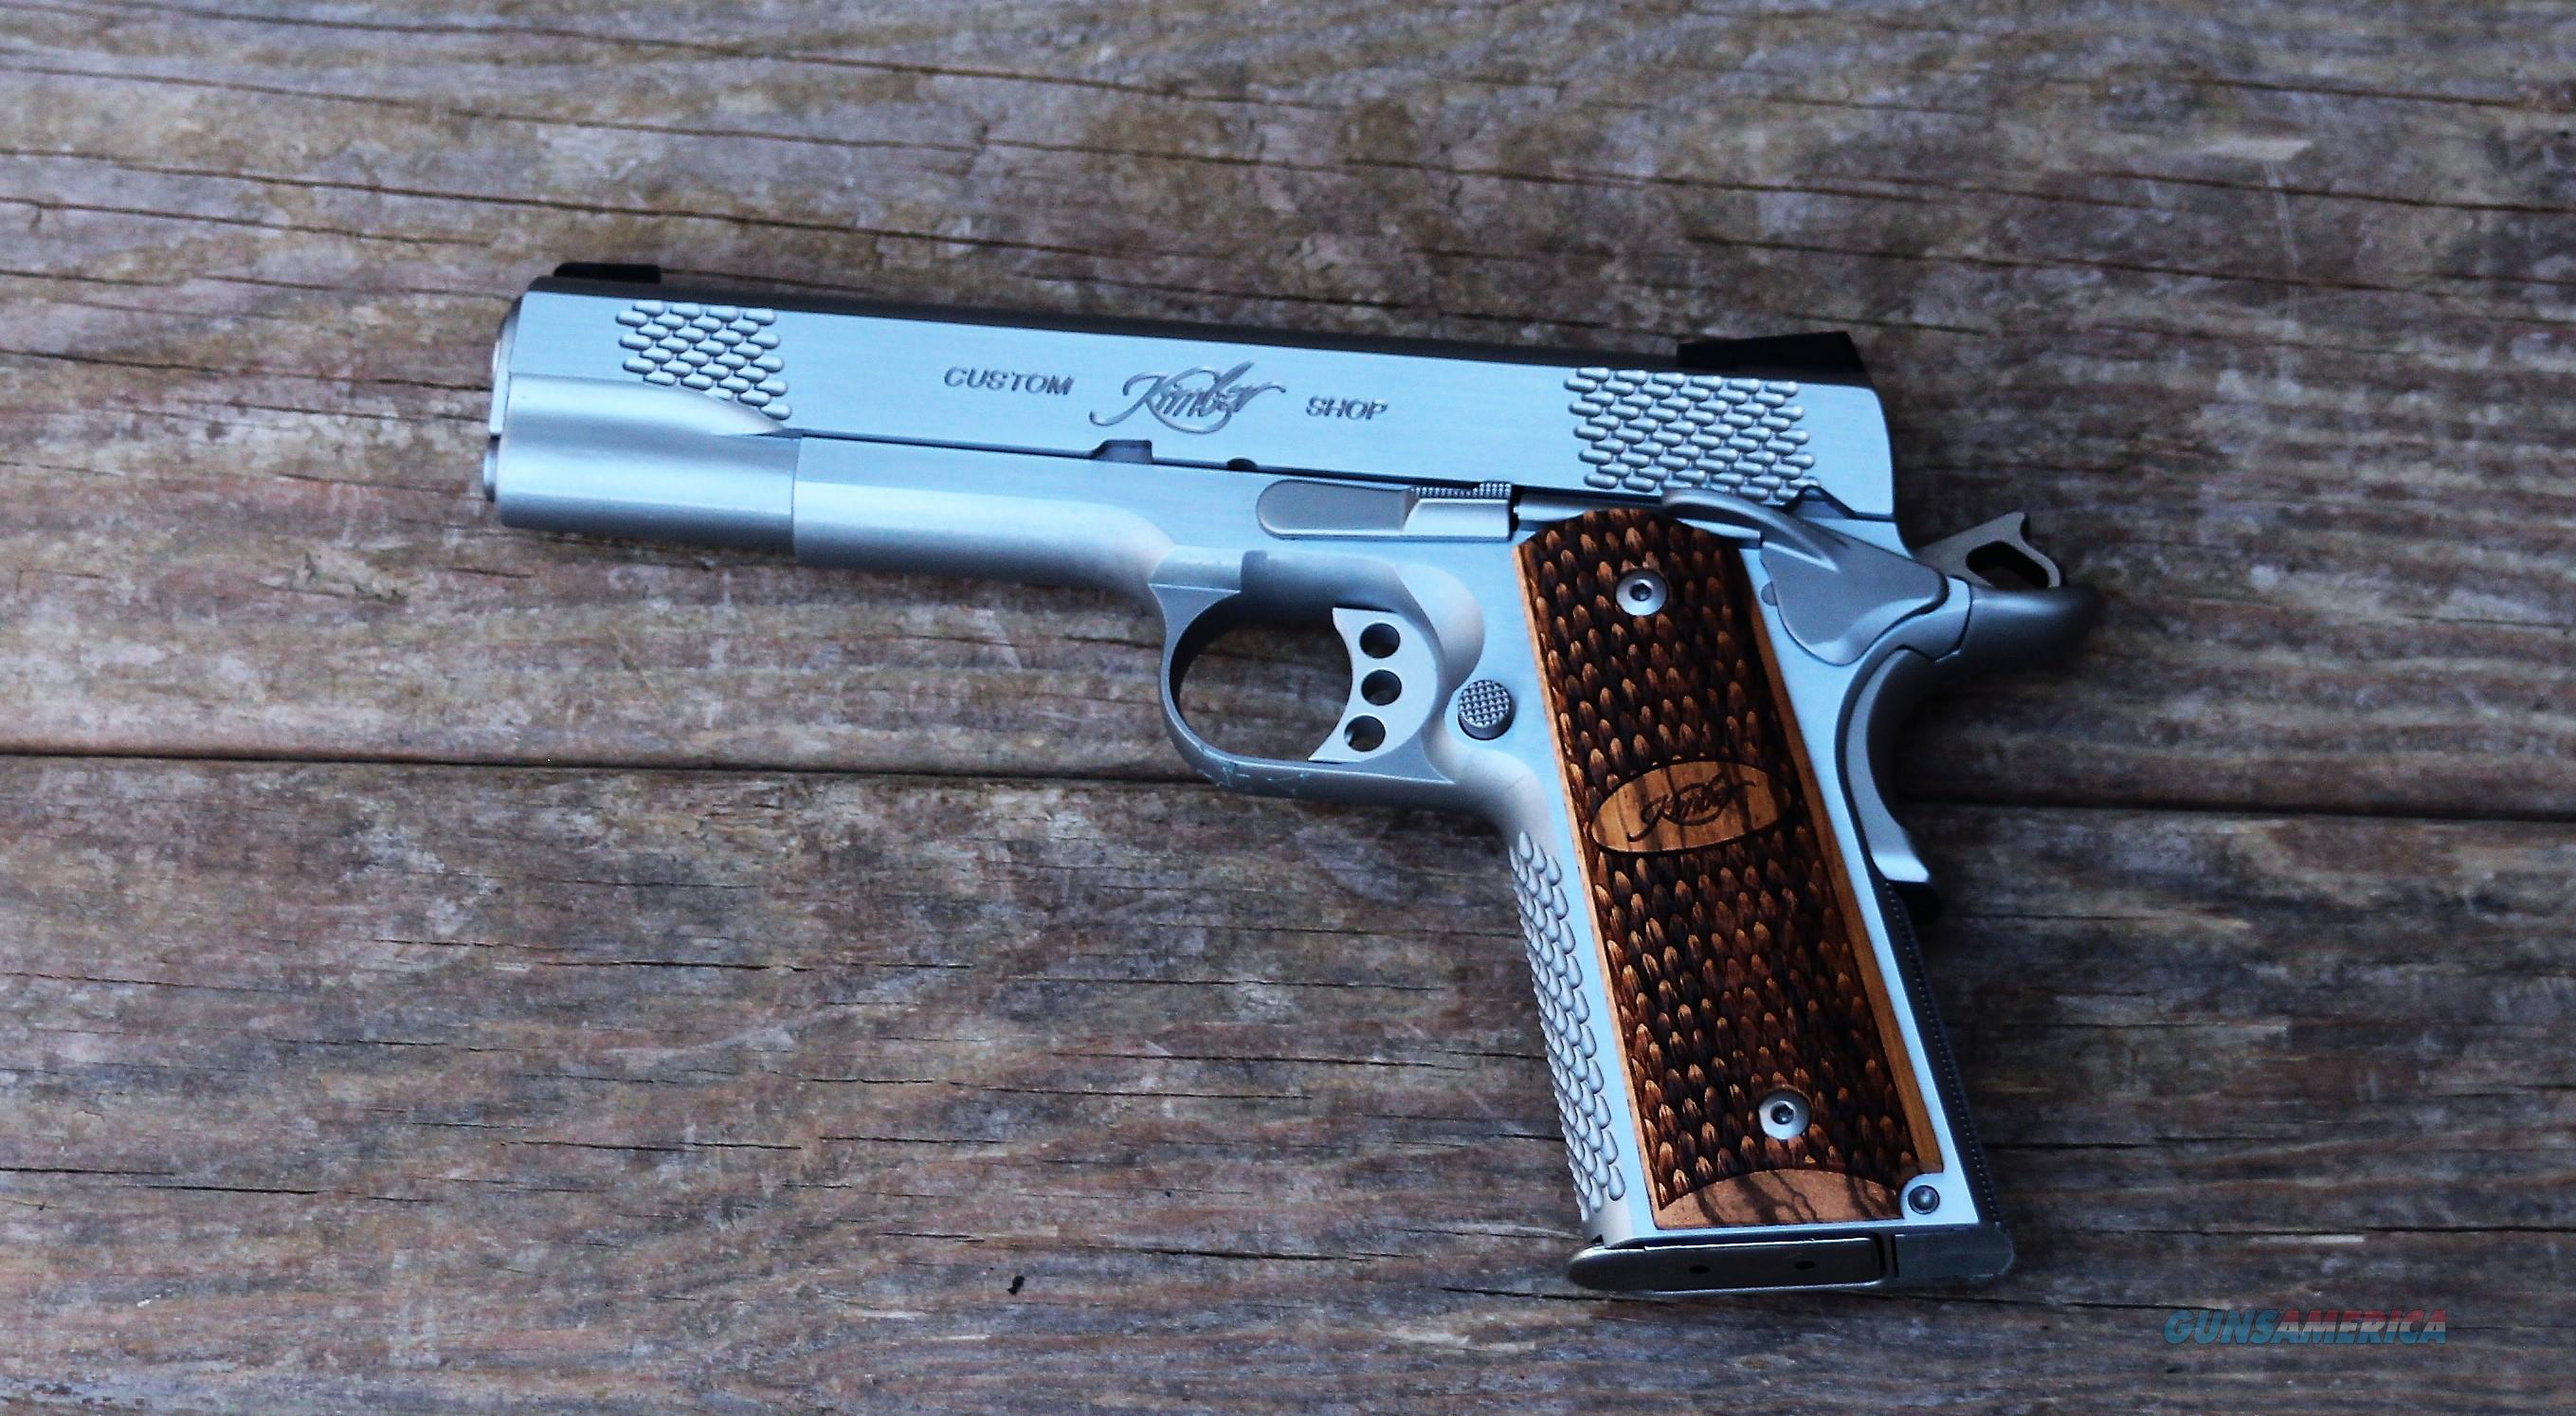 1 EASY PAY $87 LAYAWAY Kimber 3200181 Stainless Raptor II Pistol 1911 .45 ACP, 5 in Barrel, Stainless Frame/Slide, 8 Rd night sights  669278321813  Guns > Pistols > Kimber of America Pistols > 1911